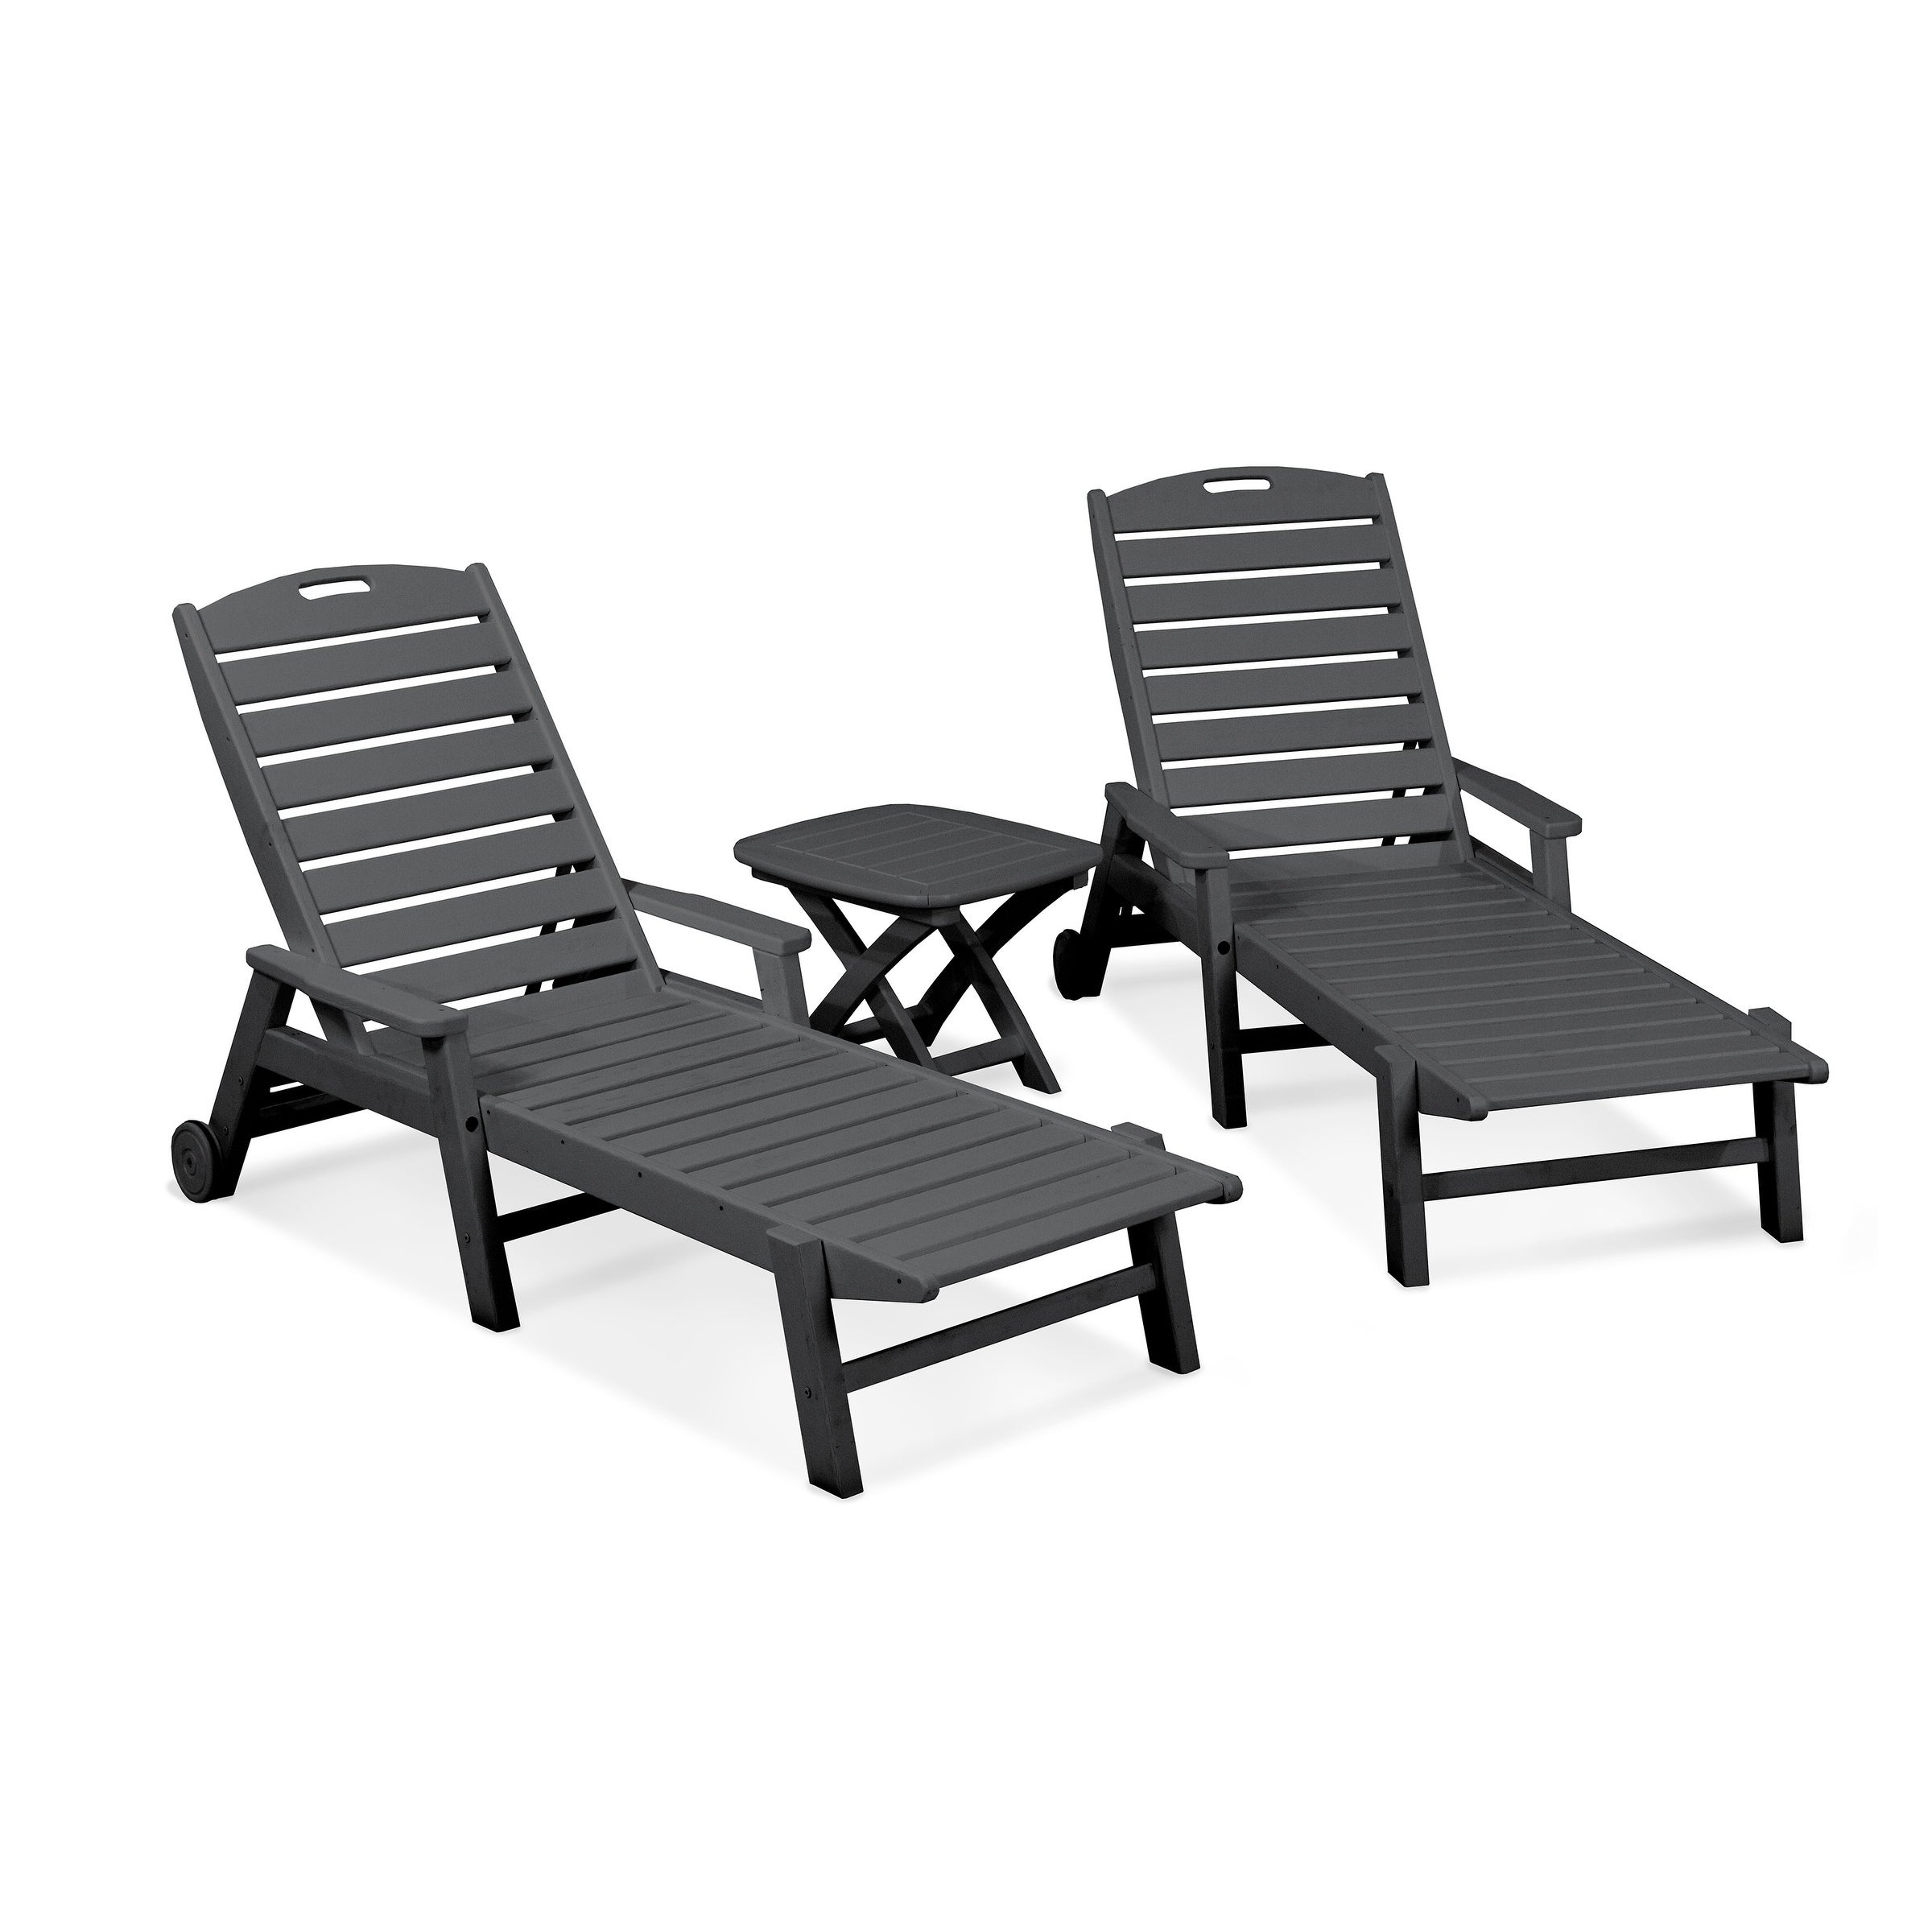 Featured Photo of Nautical 3-piece Outdoor Chaise Lounge Sets with Wheels and Table